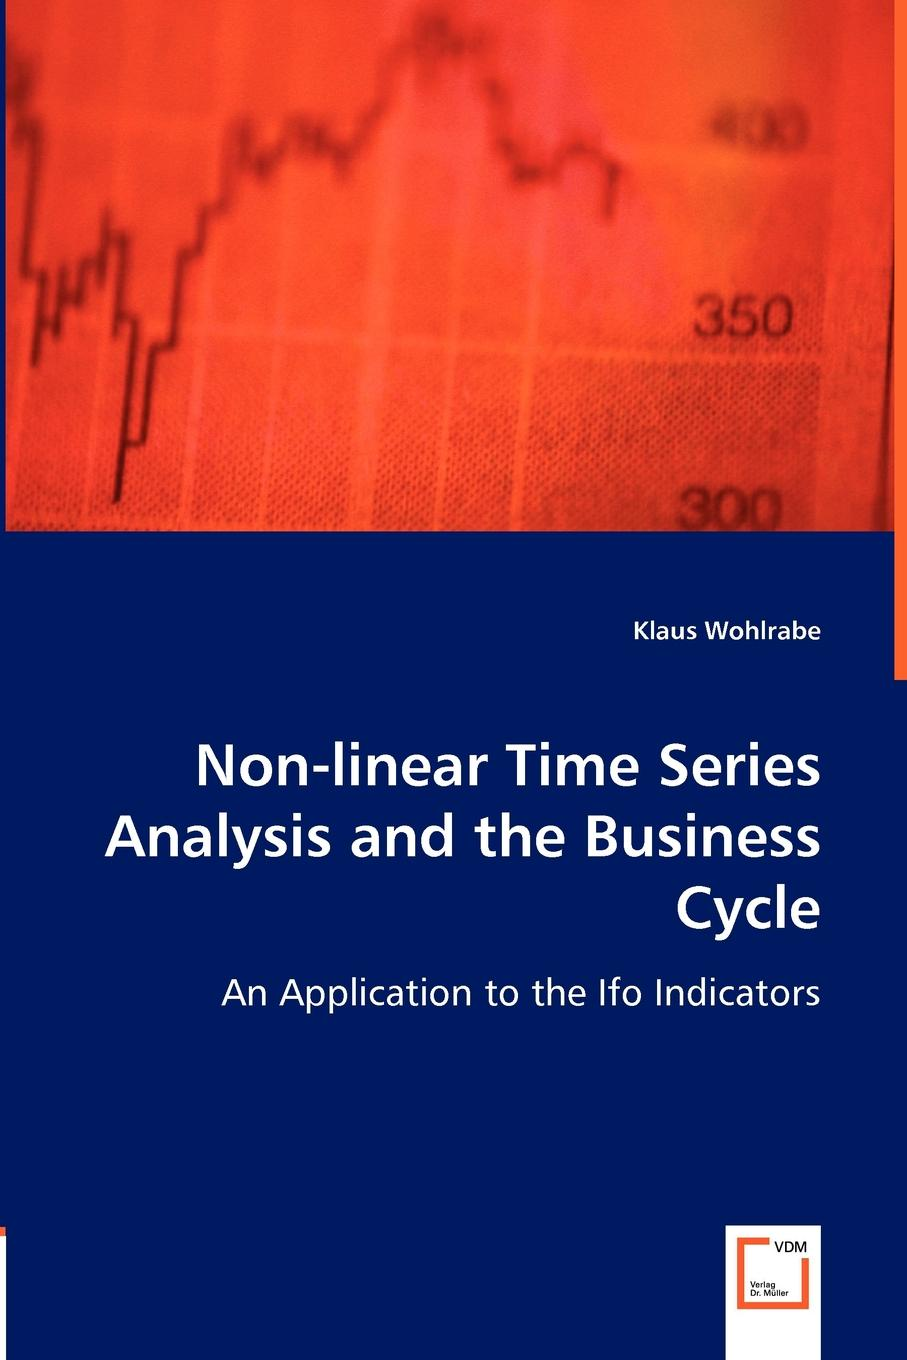 Klaus Wohlrabe Non-linear Time Series Analysis and the Business Cycle marc paolella s linear models and time series analysis regression anova arma and garch